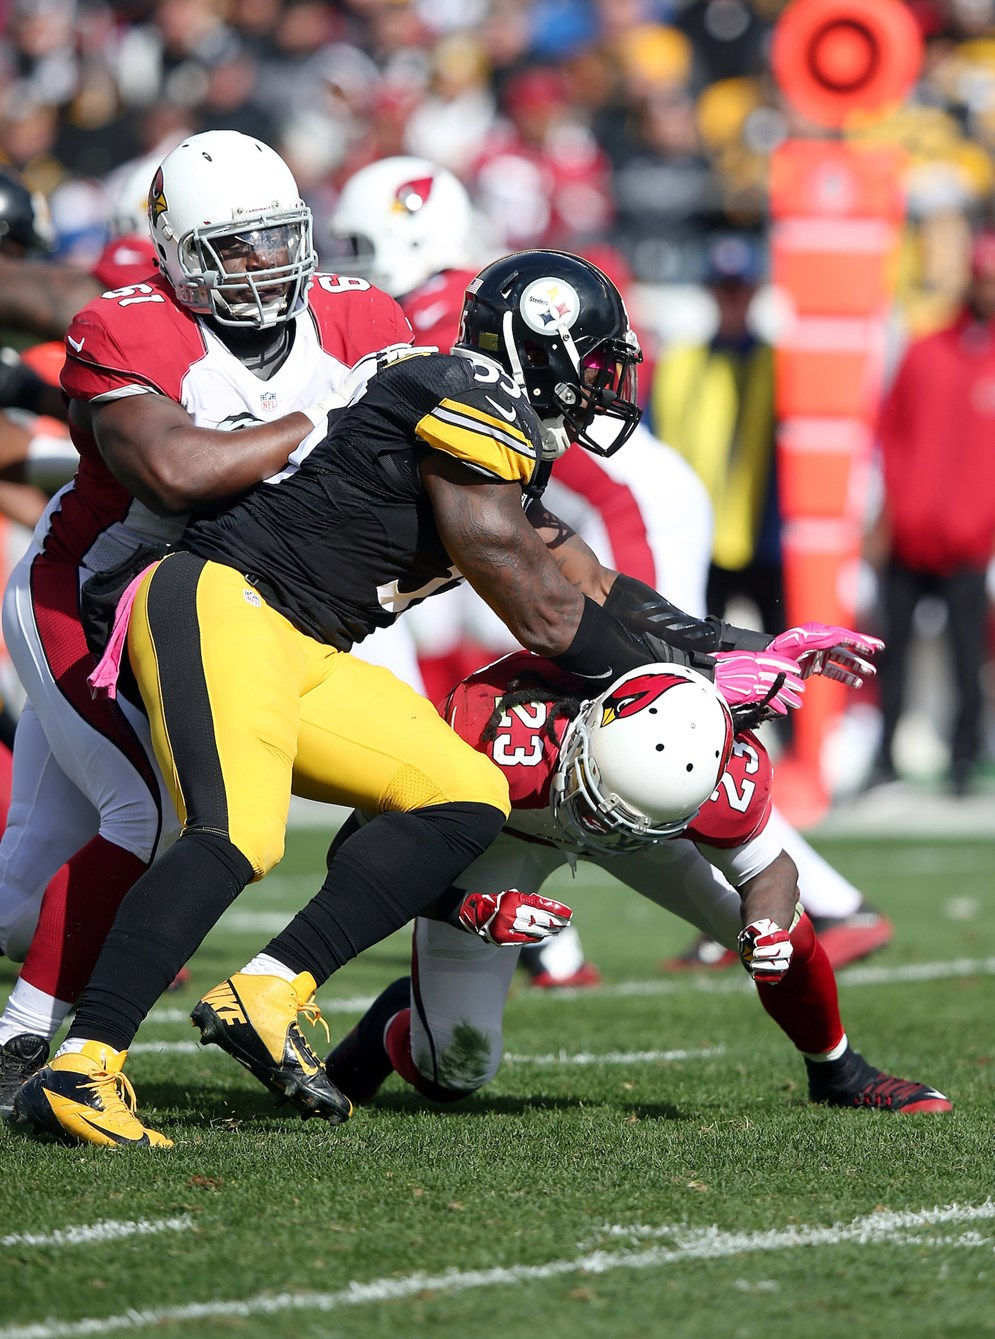 Pittsburgh Steelers outside linebacker Arthur Moats works his way through an illegal chop block in a game against the Arizona Cardinals. The NFL Competition Committee voted to make all chop blocks illegal beginning in 2016. (Paul Spinelli via AP)